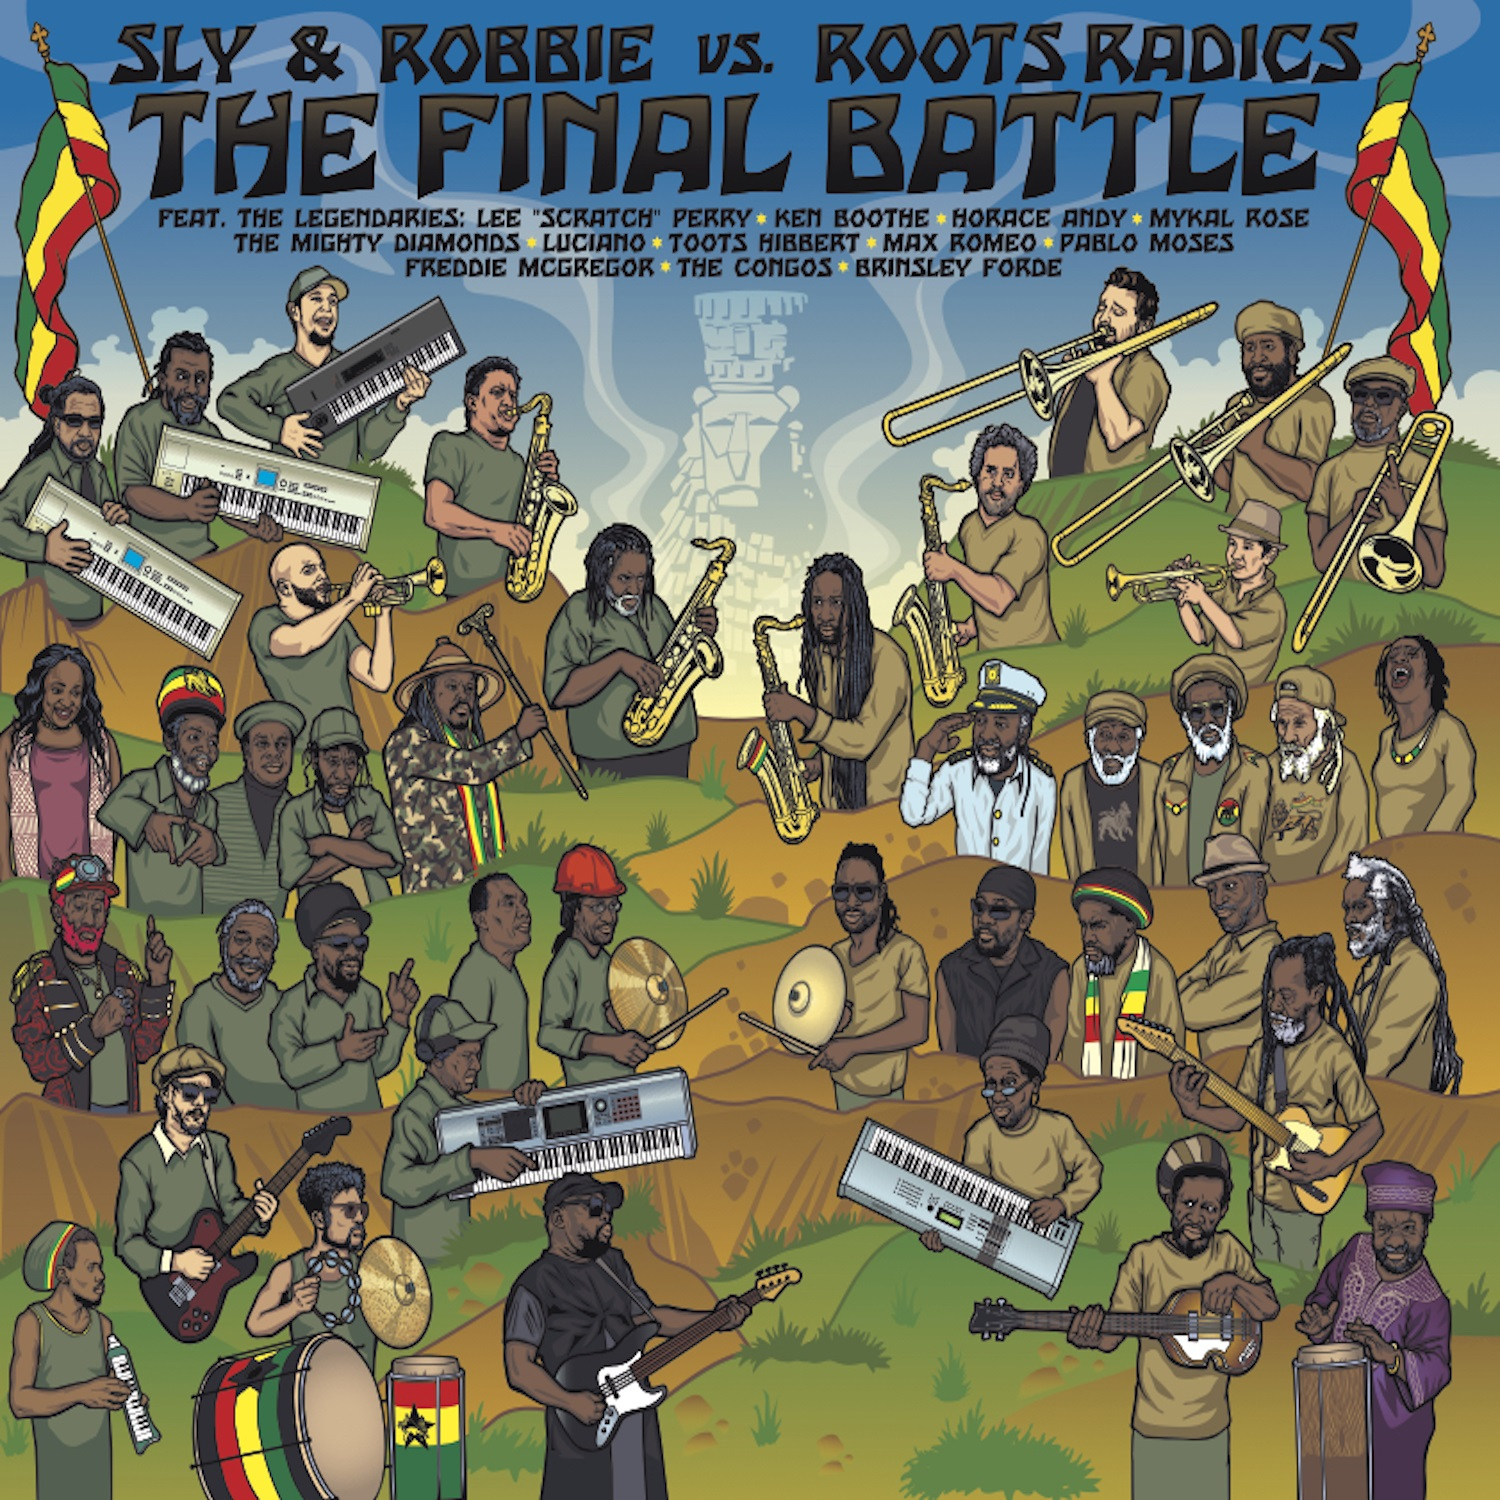 Sly & Robbie, Roots Radics - The Final Battle: Sly & Robbie vs. Roots Radics [RSD Drops 2021]